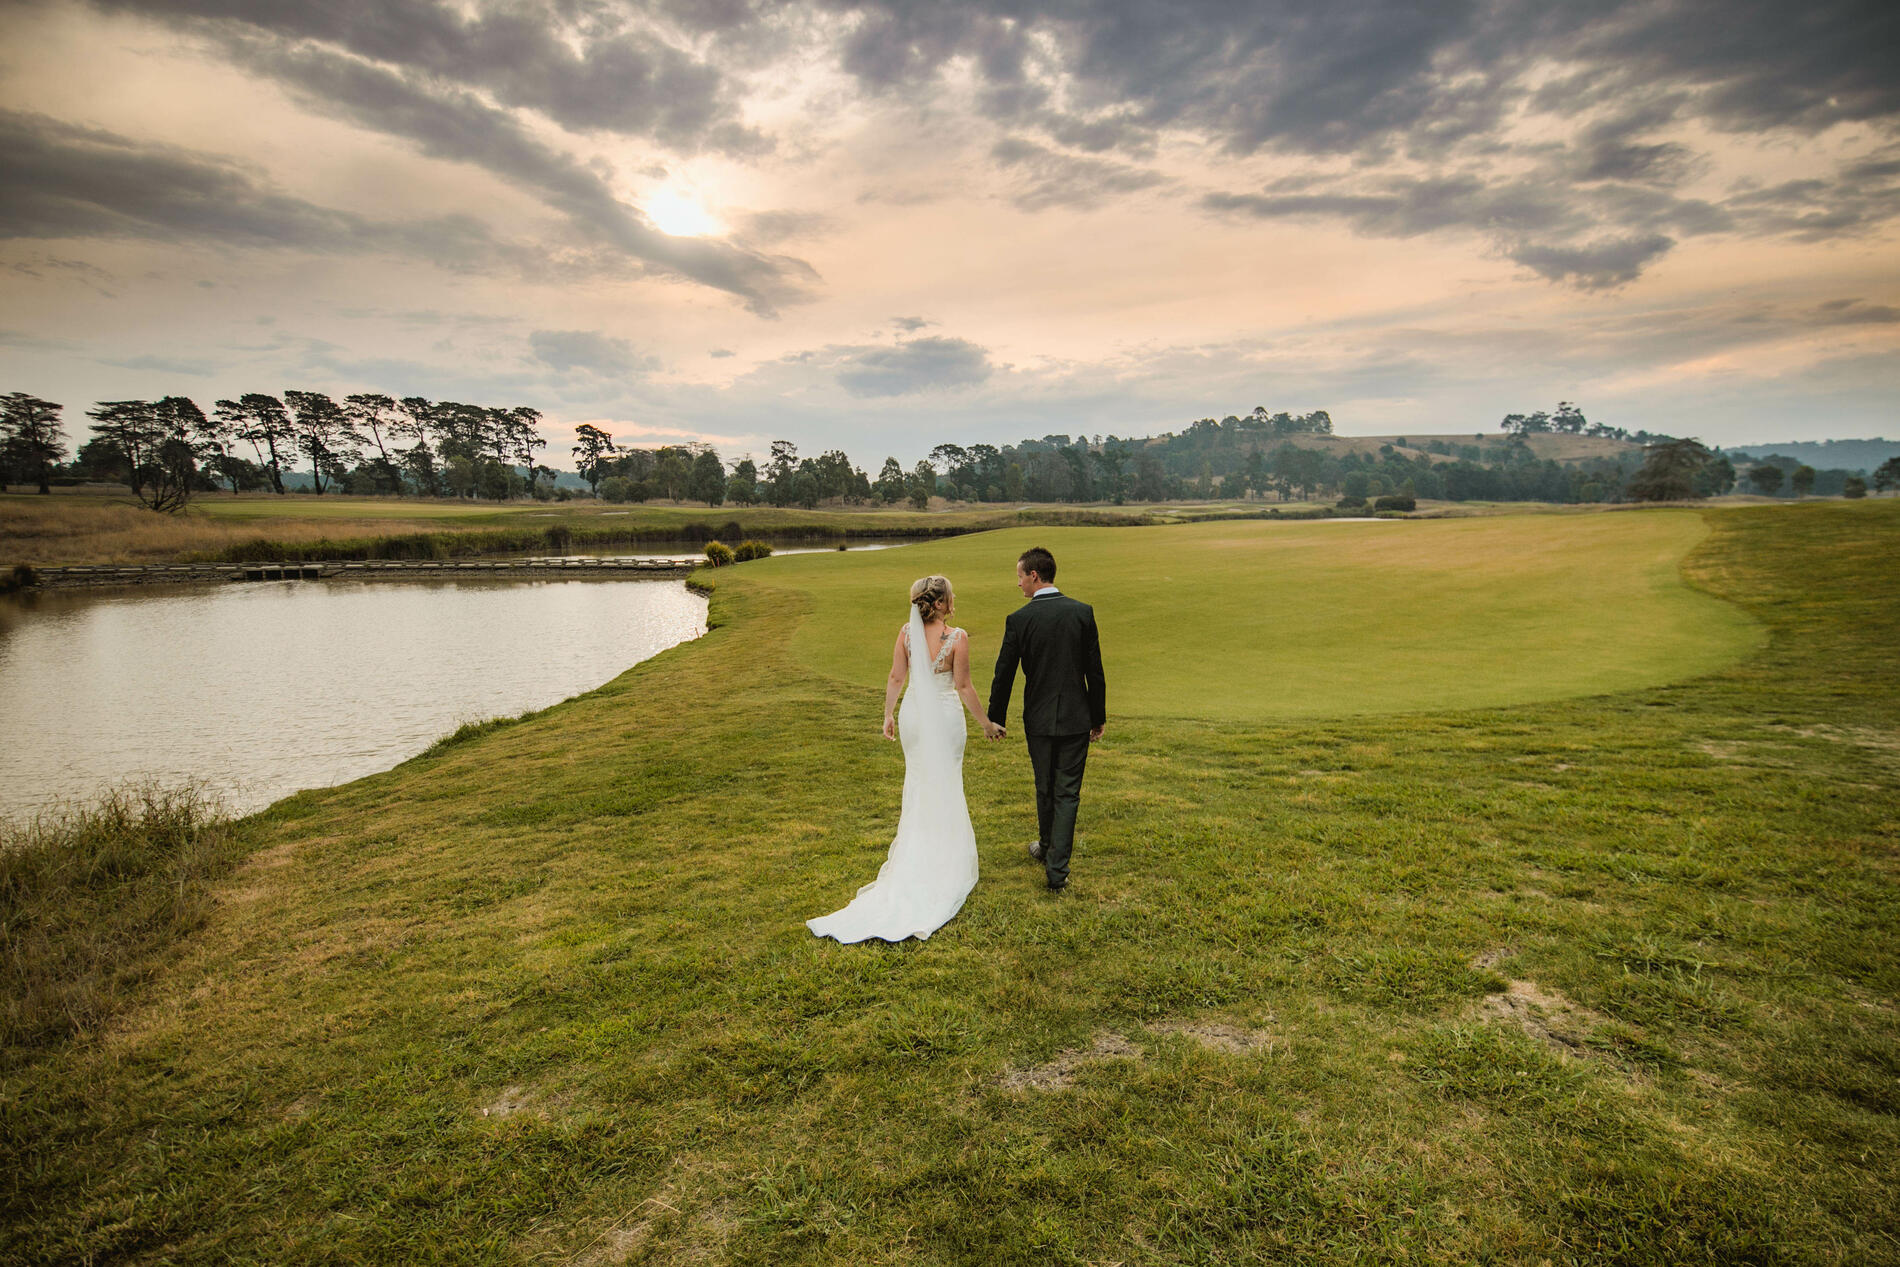 Wedding Photography at Yarra Valley Lodge Golf Course